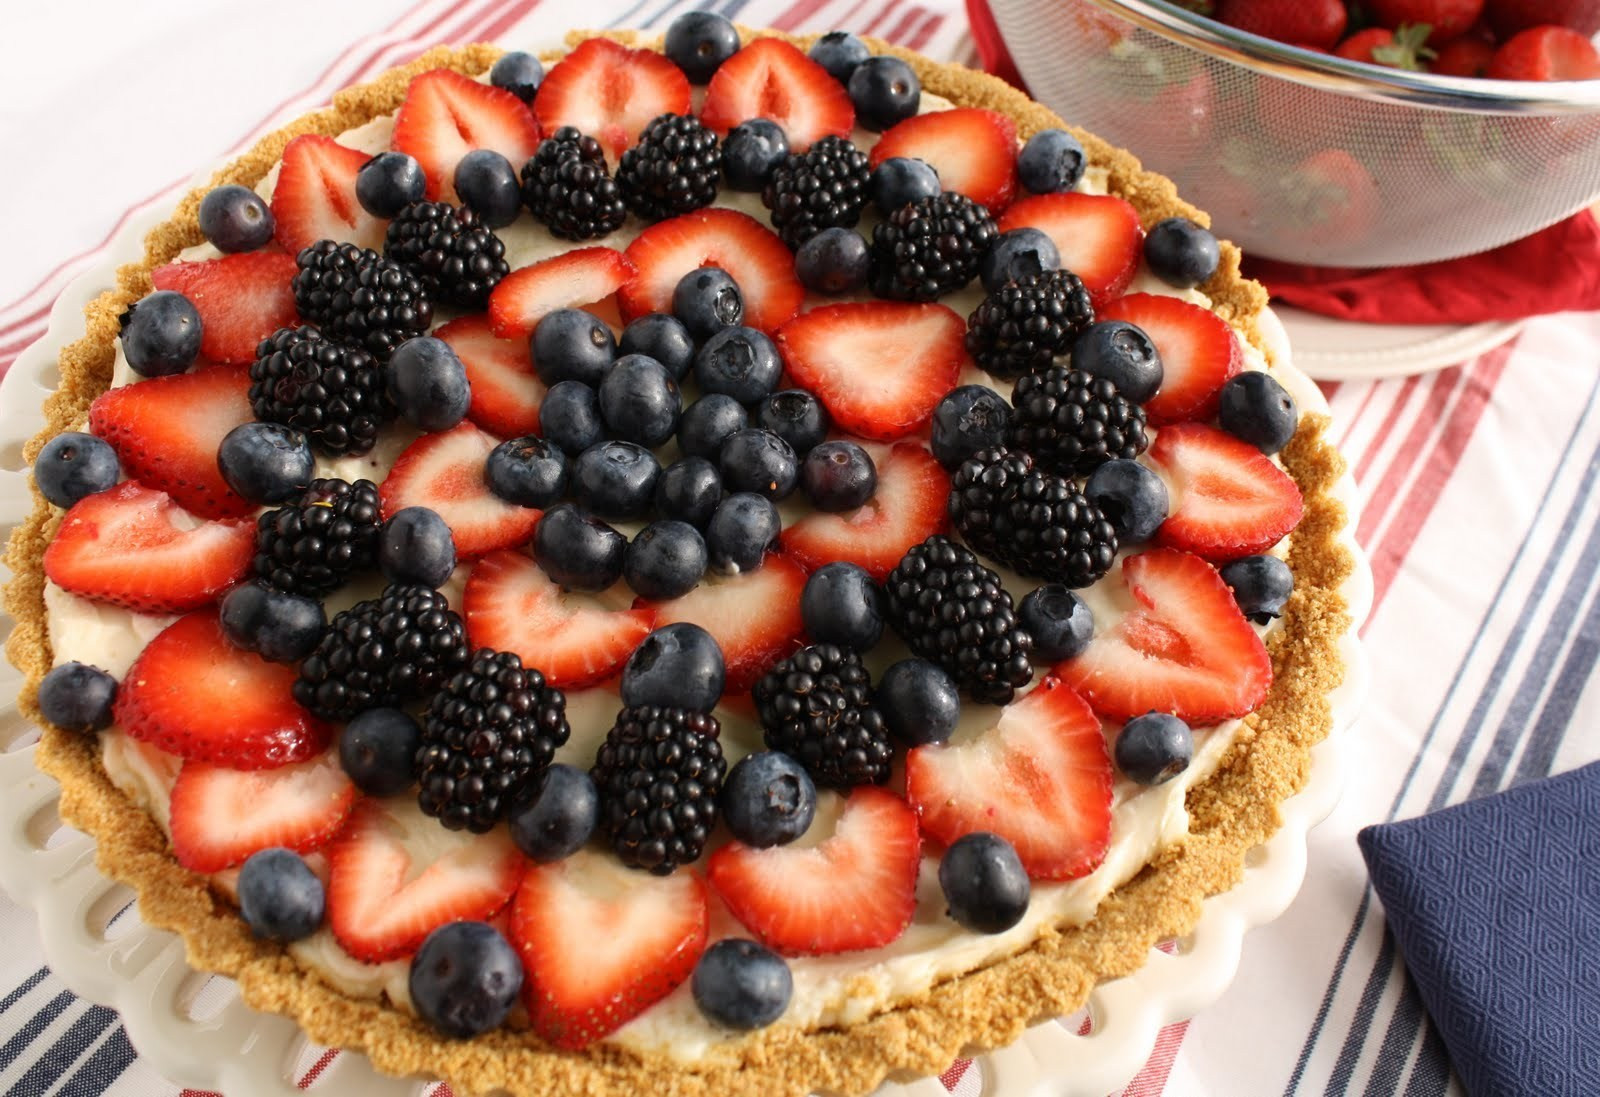 Fruit Pie Recipes  Patriotic Dessert Recipes Red White and Blue Berry Fruit Tart